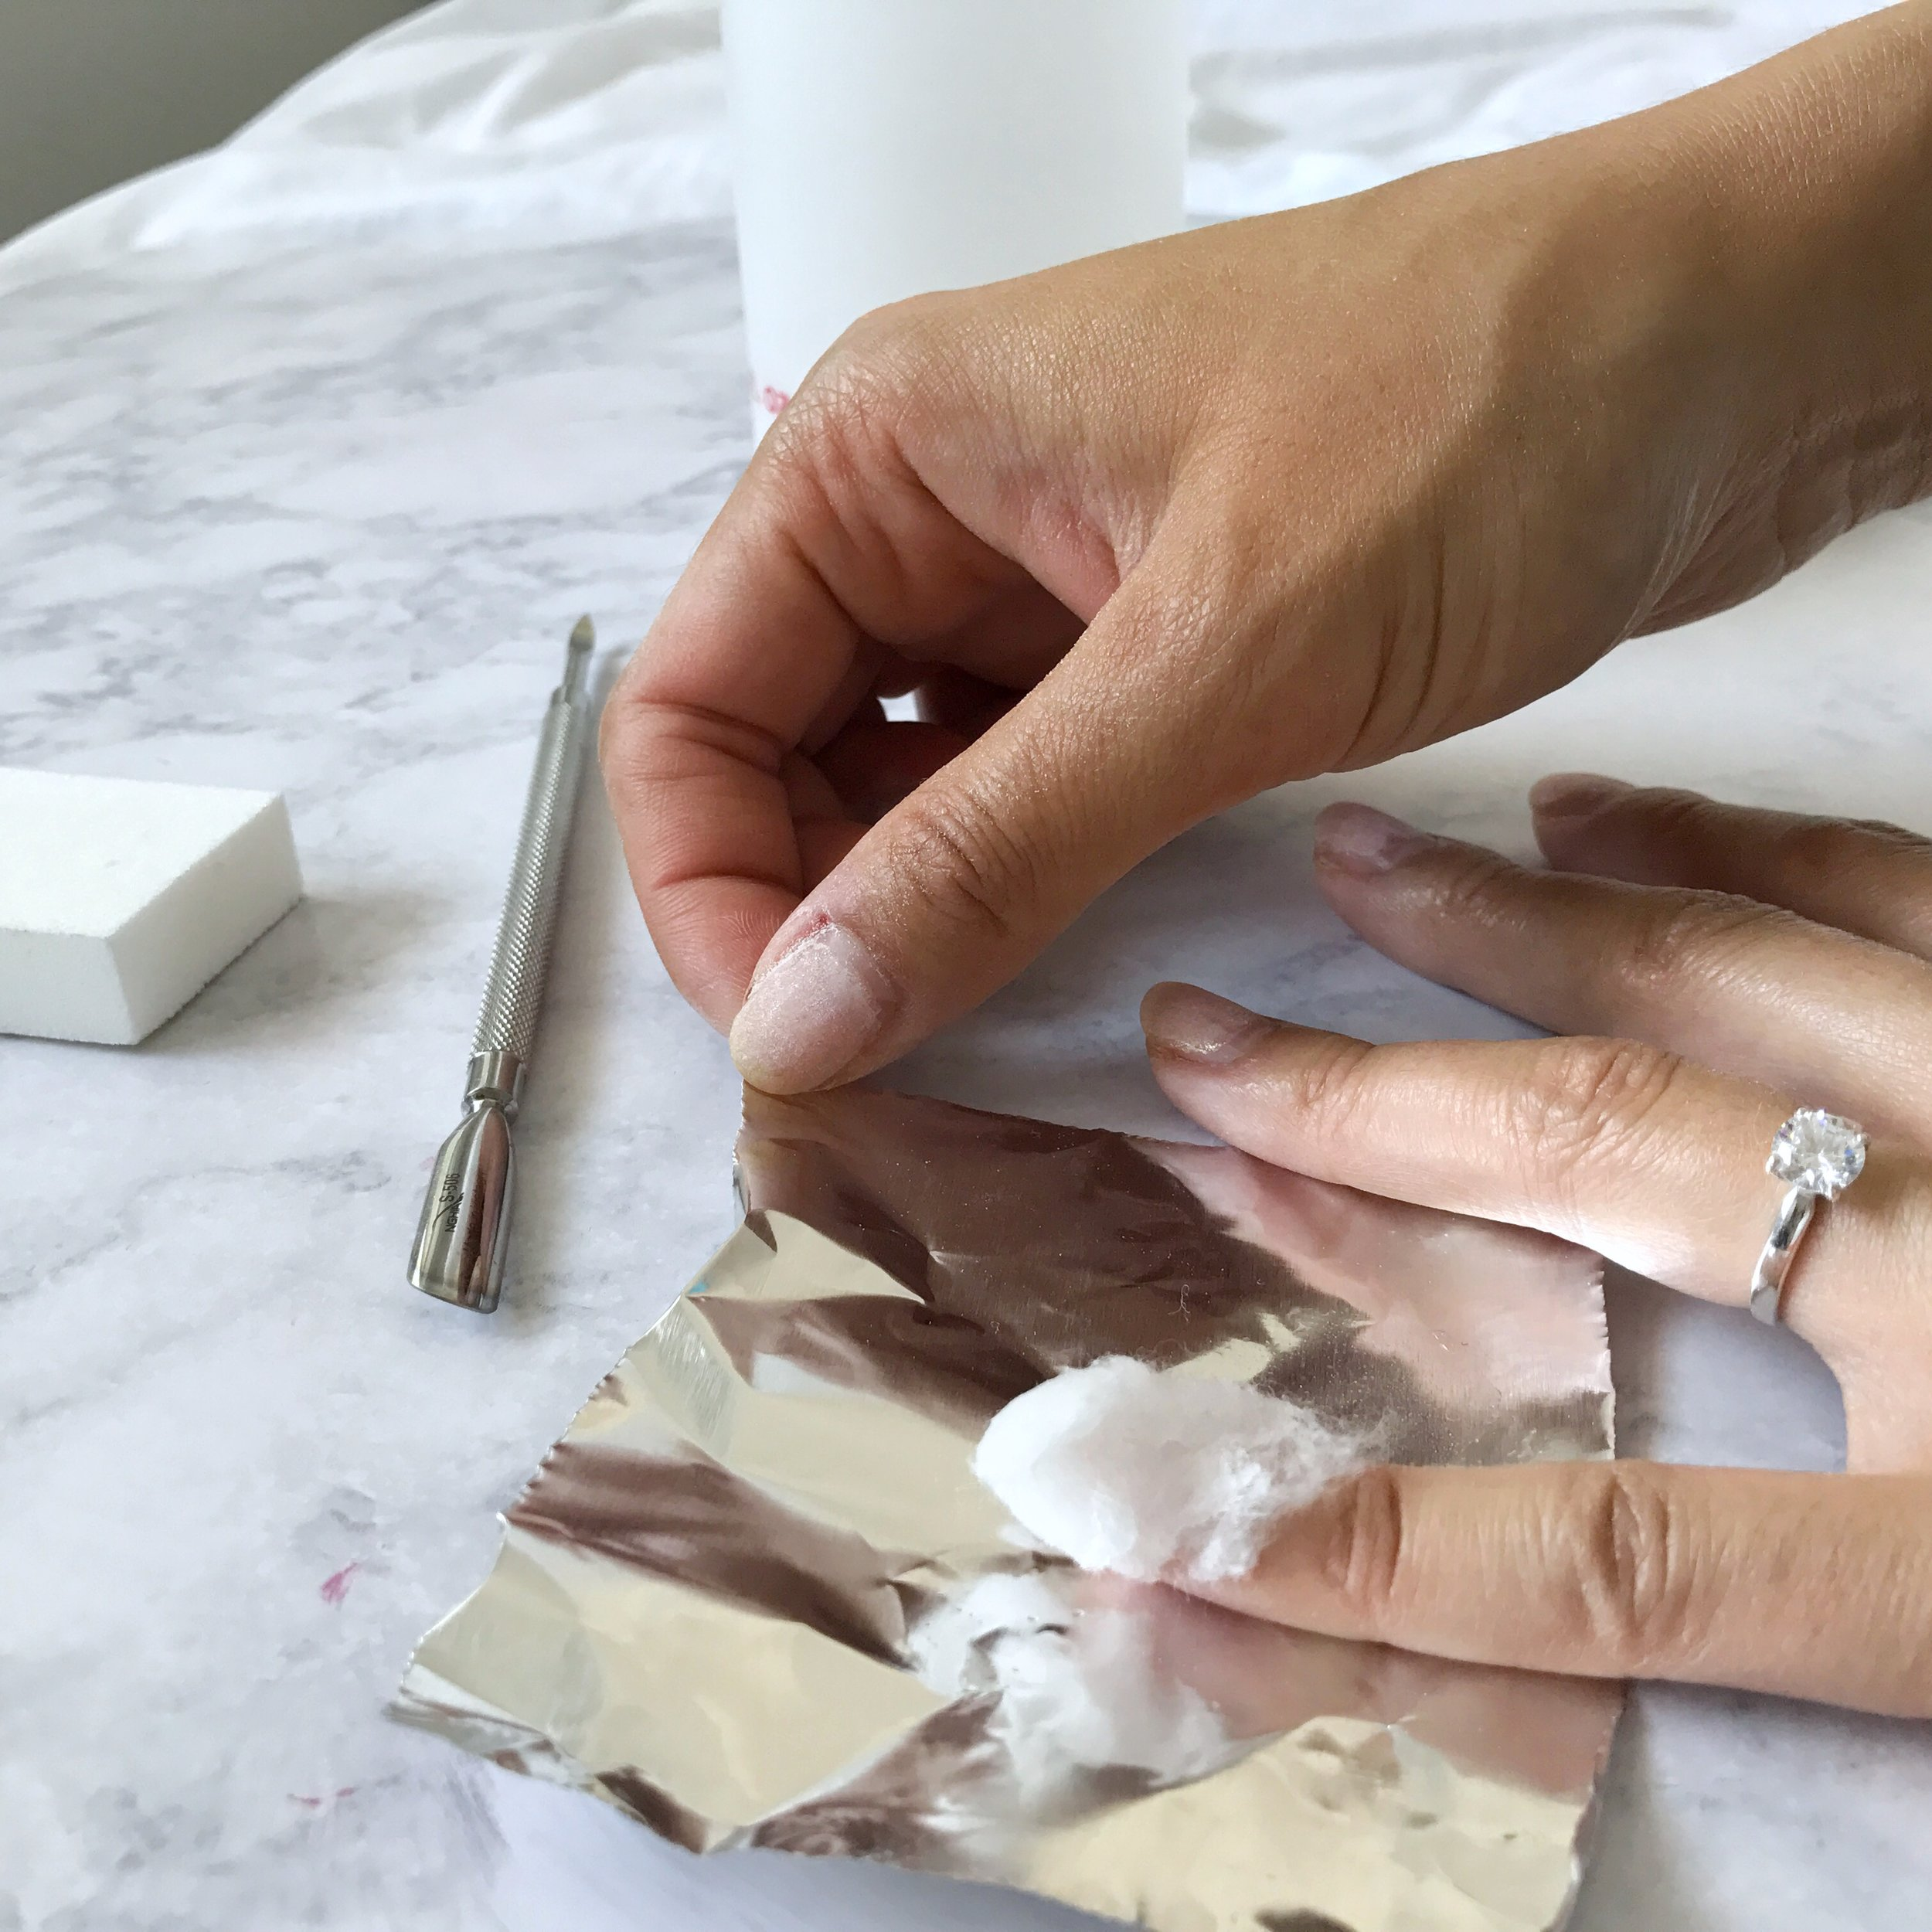 Place cotton on top of nail